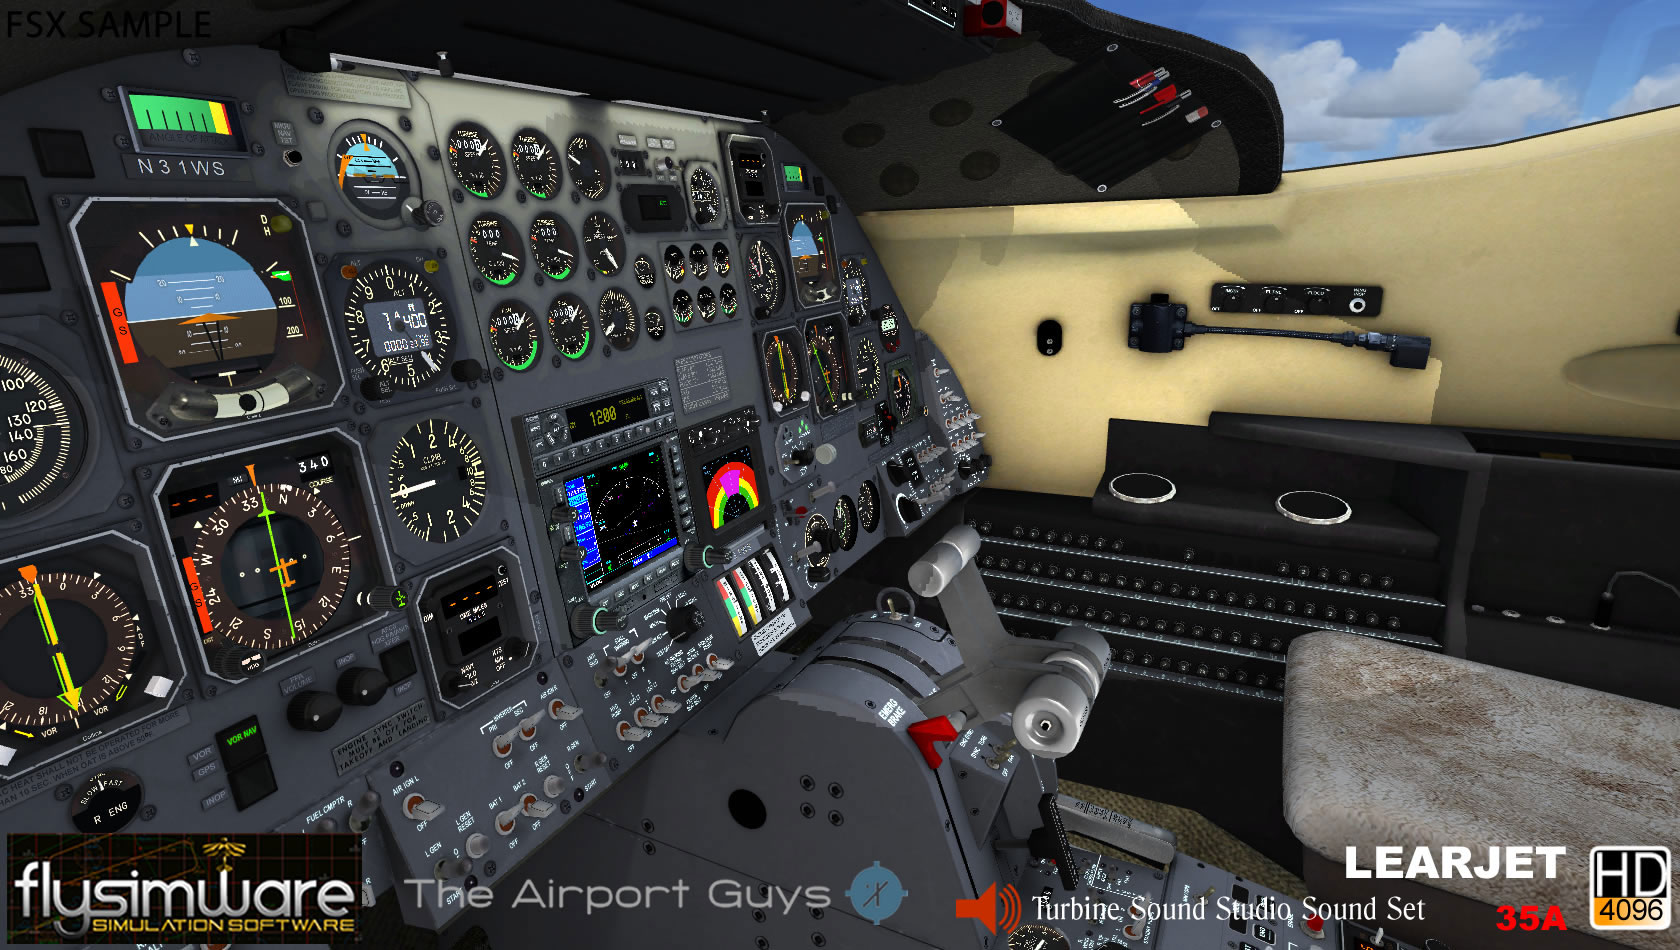 Learjet 35A for FSX/P3D